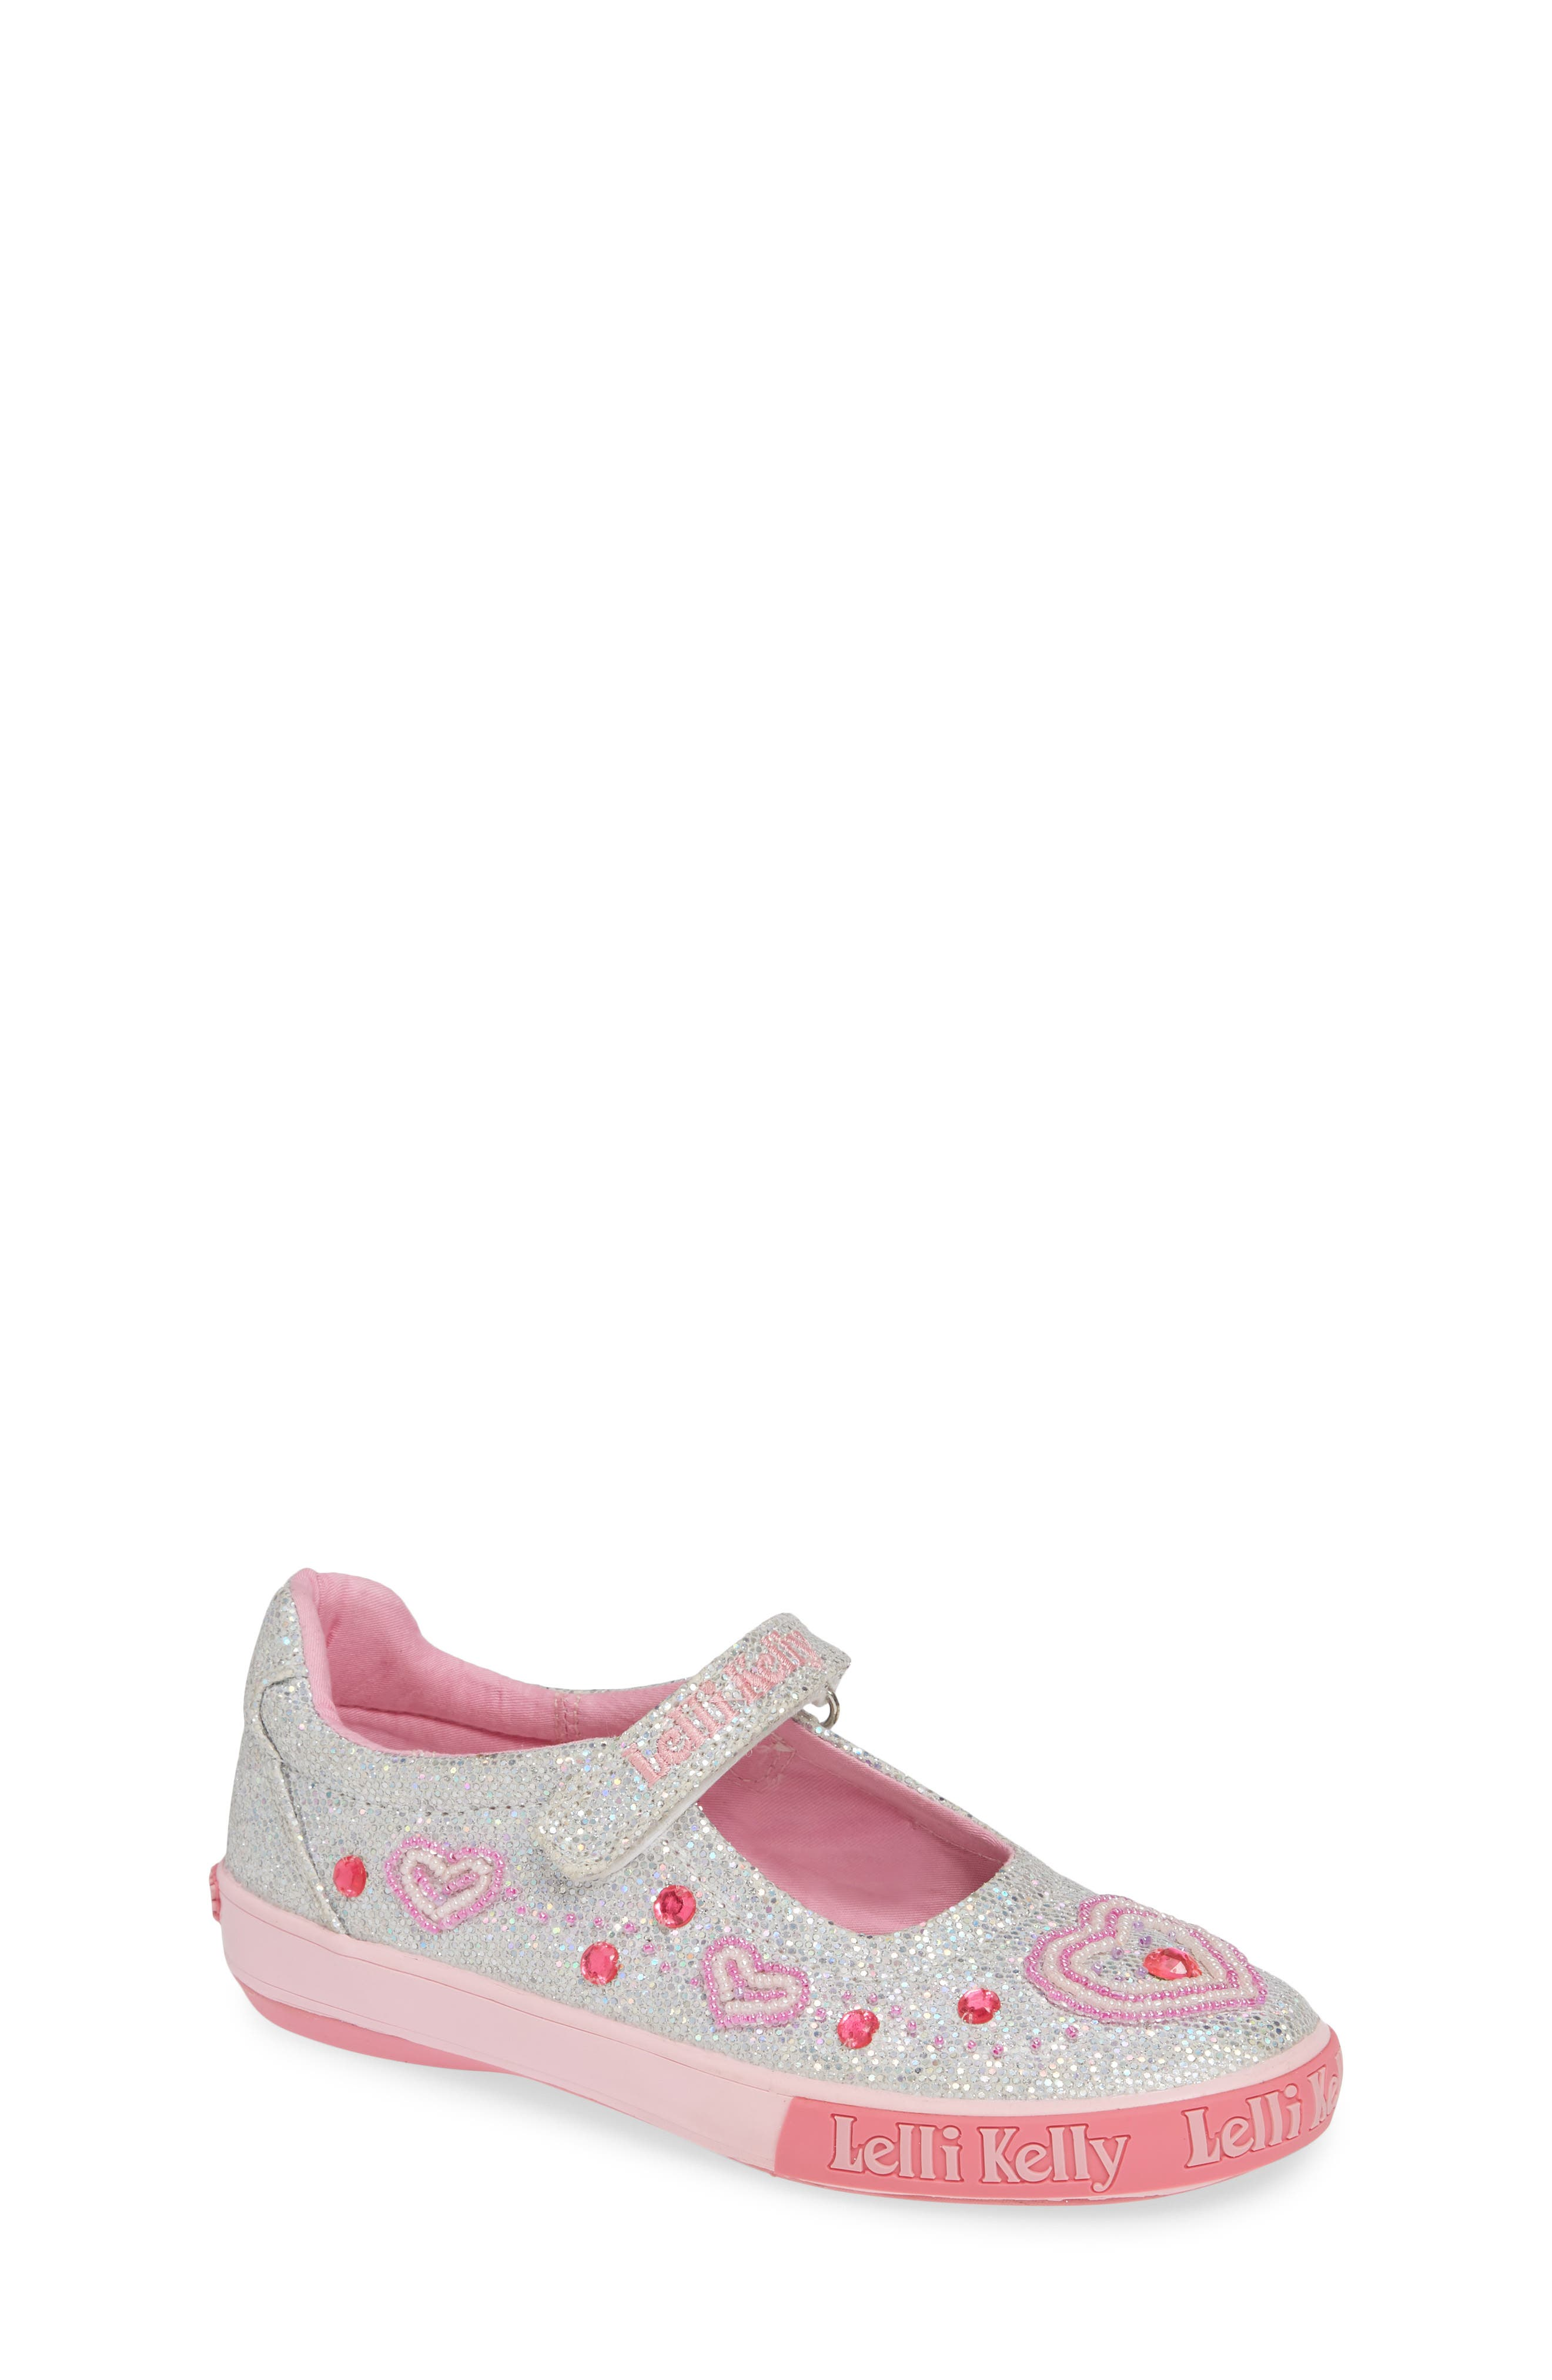 8c54901d207 Girls  Lelli Kelly Shoes